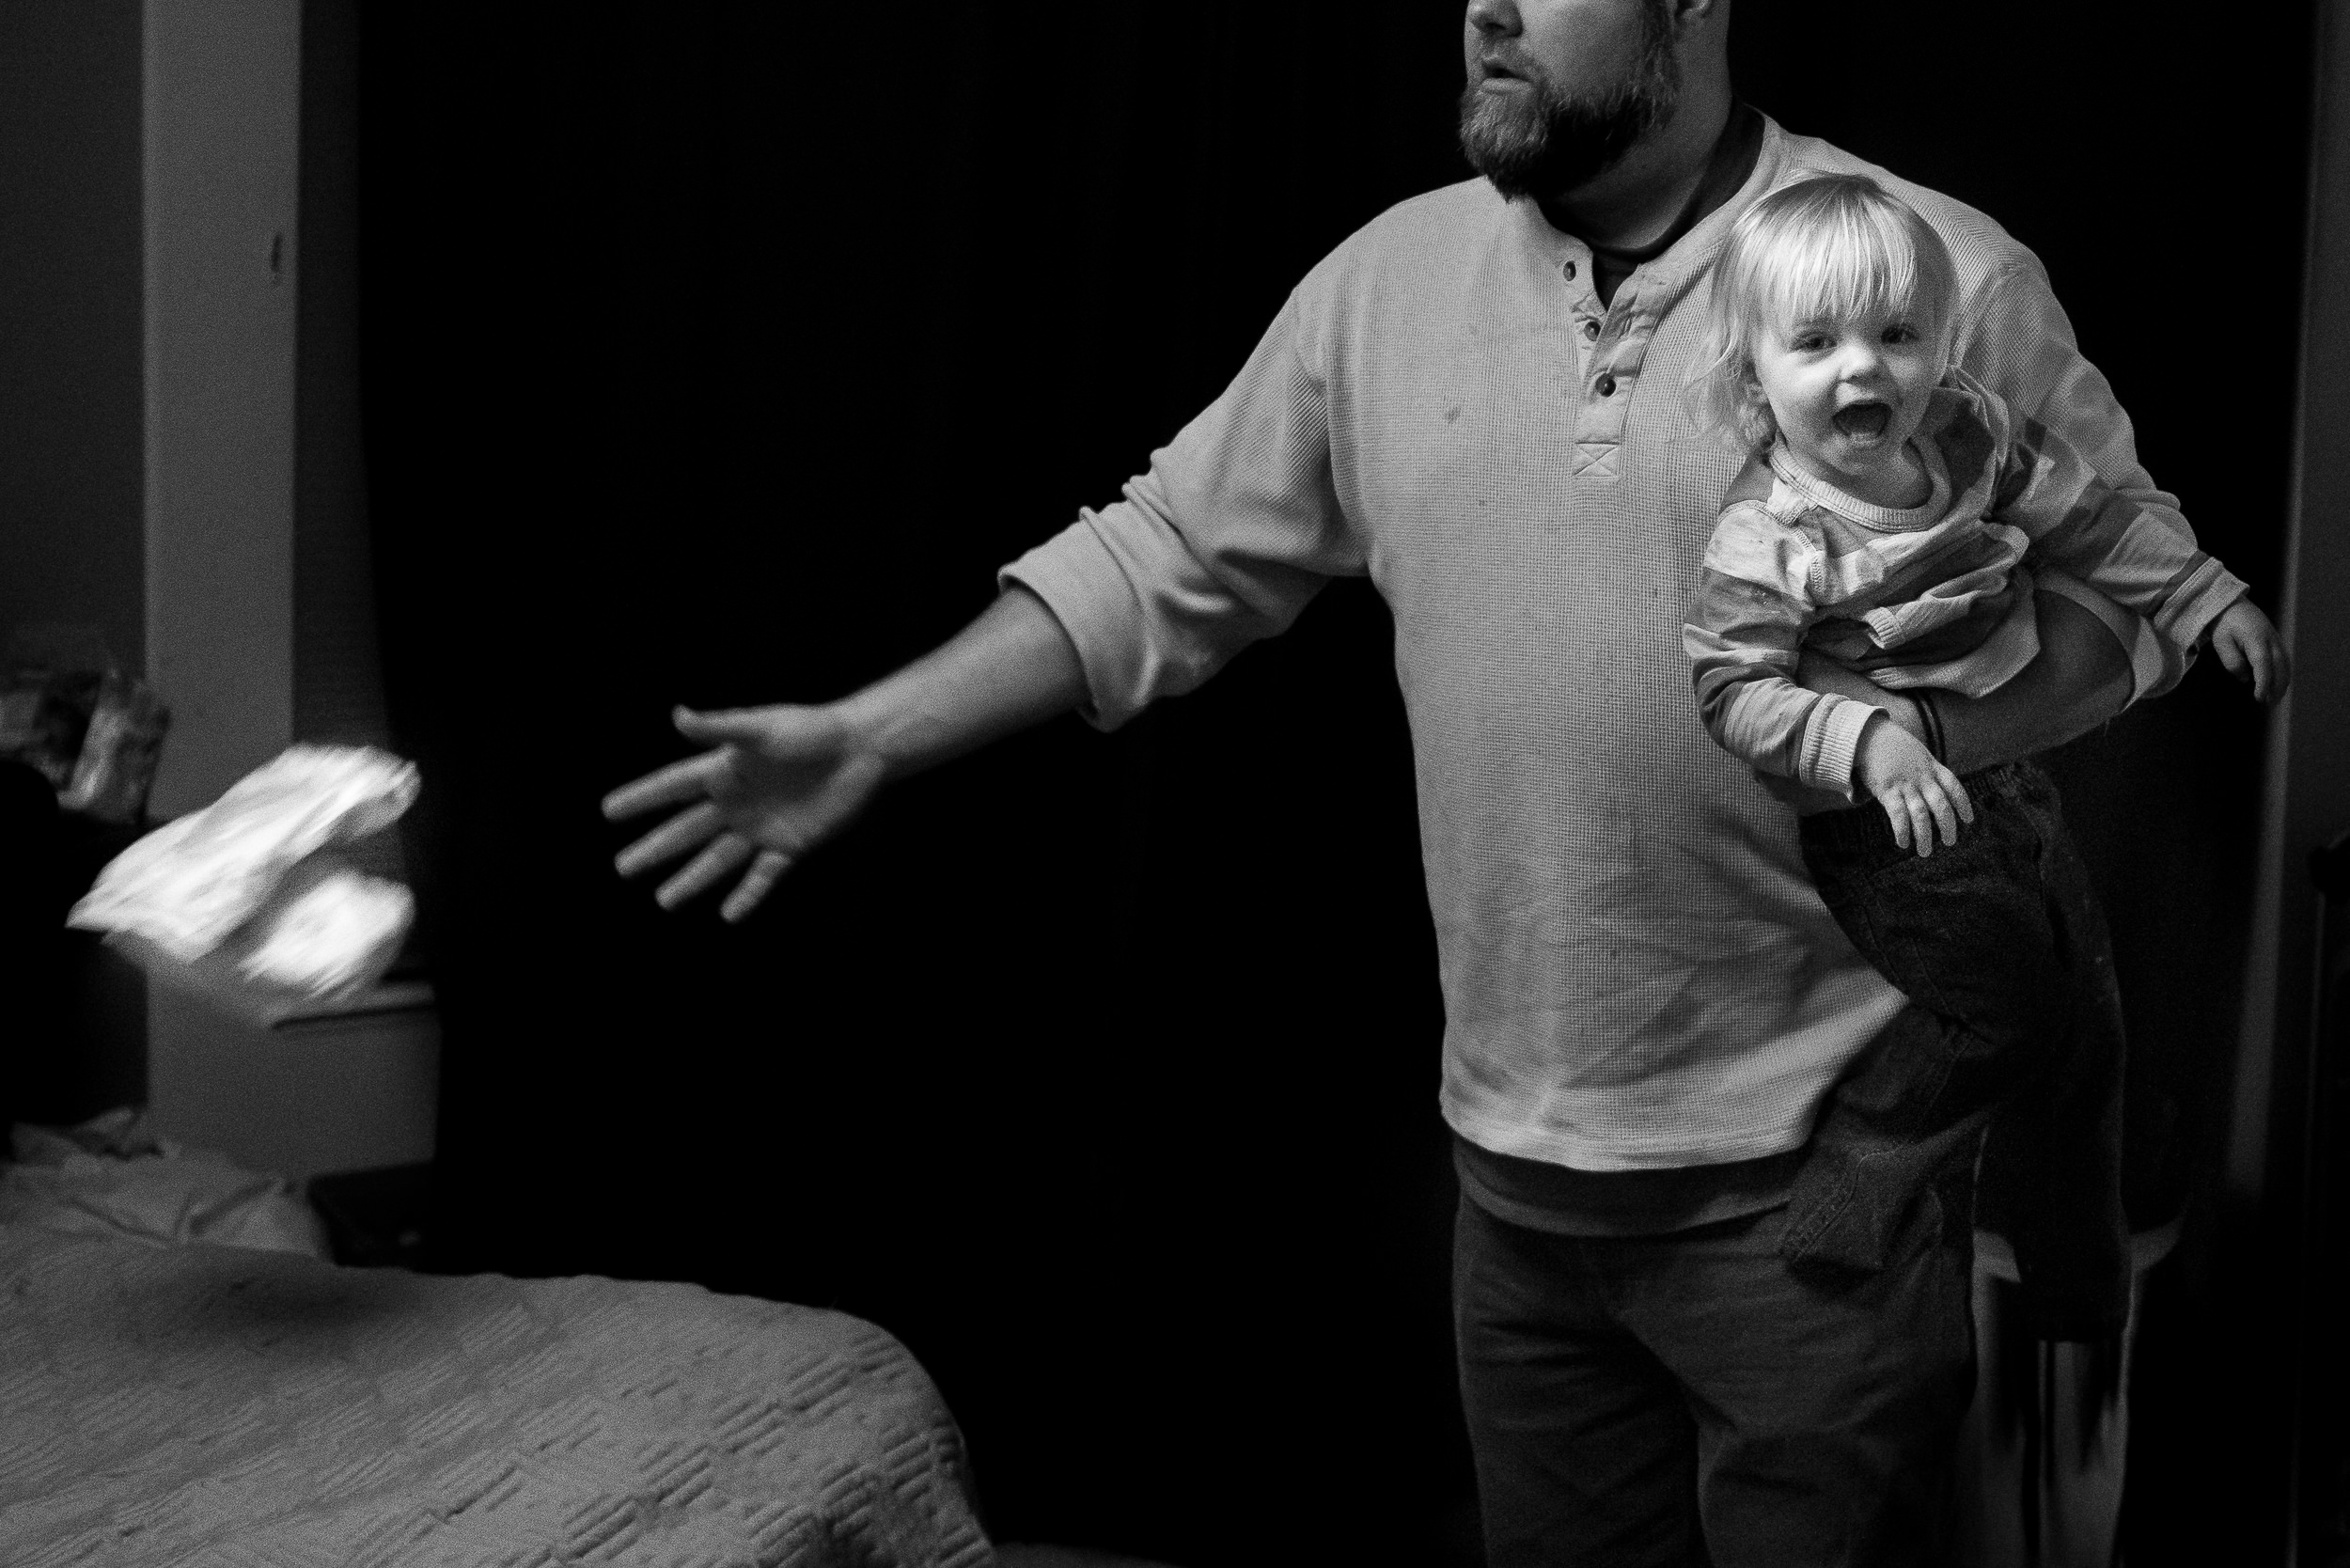 Black and White Documentary Family Photography in Denver, Colorado - dad diaper change